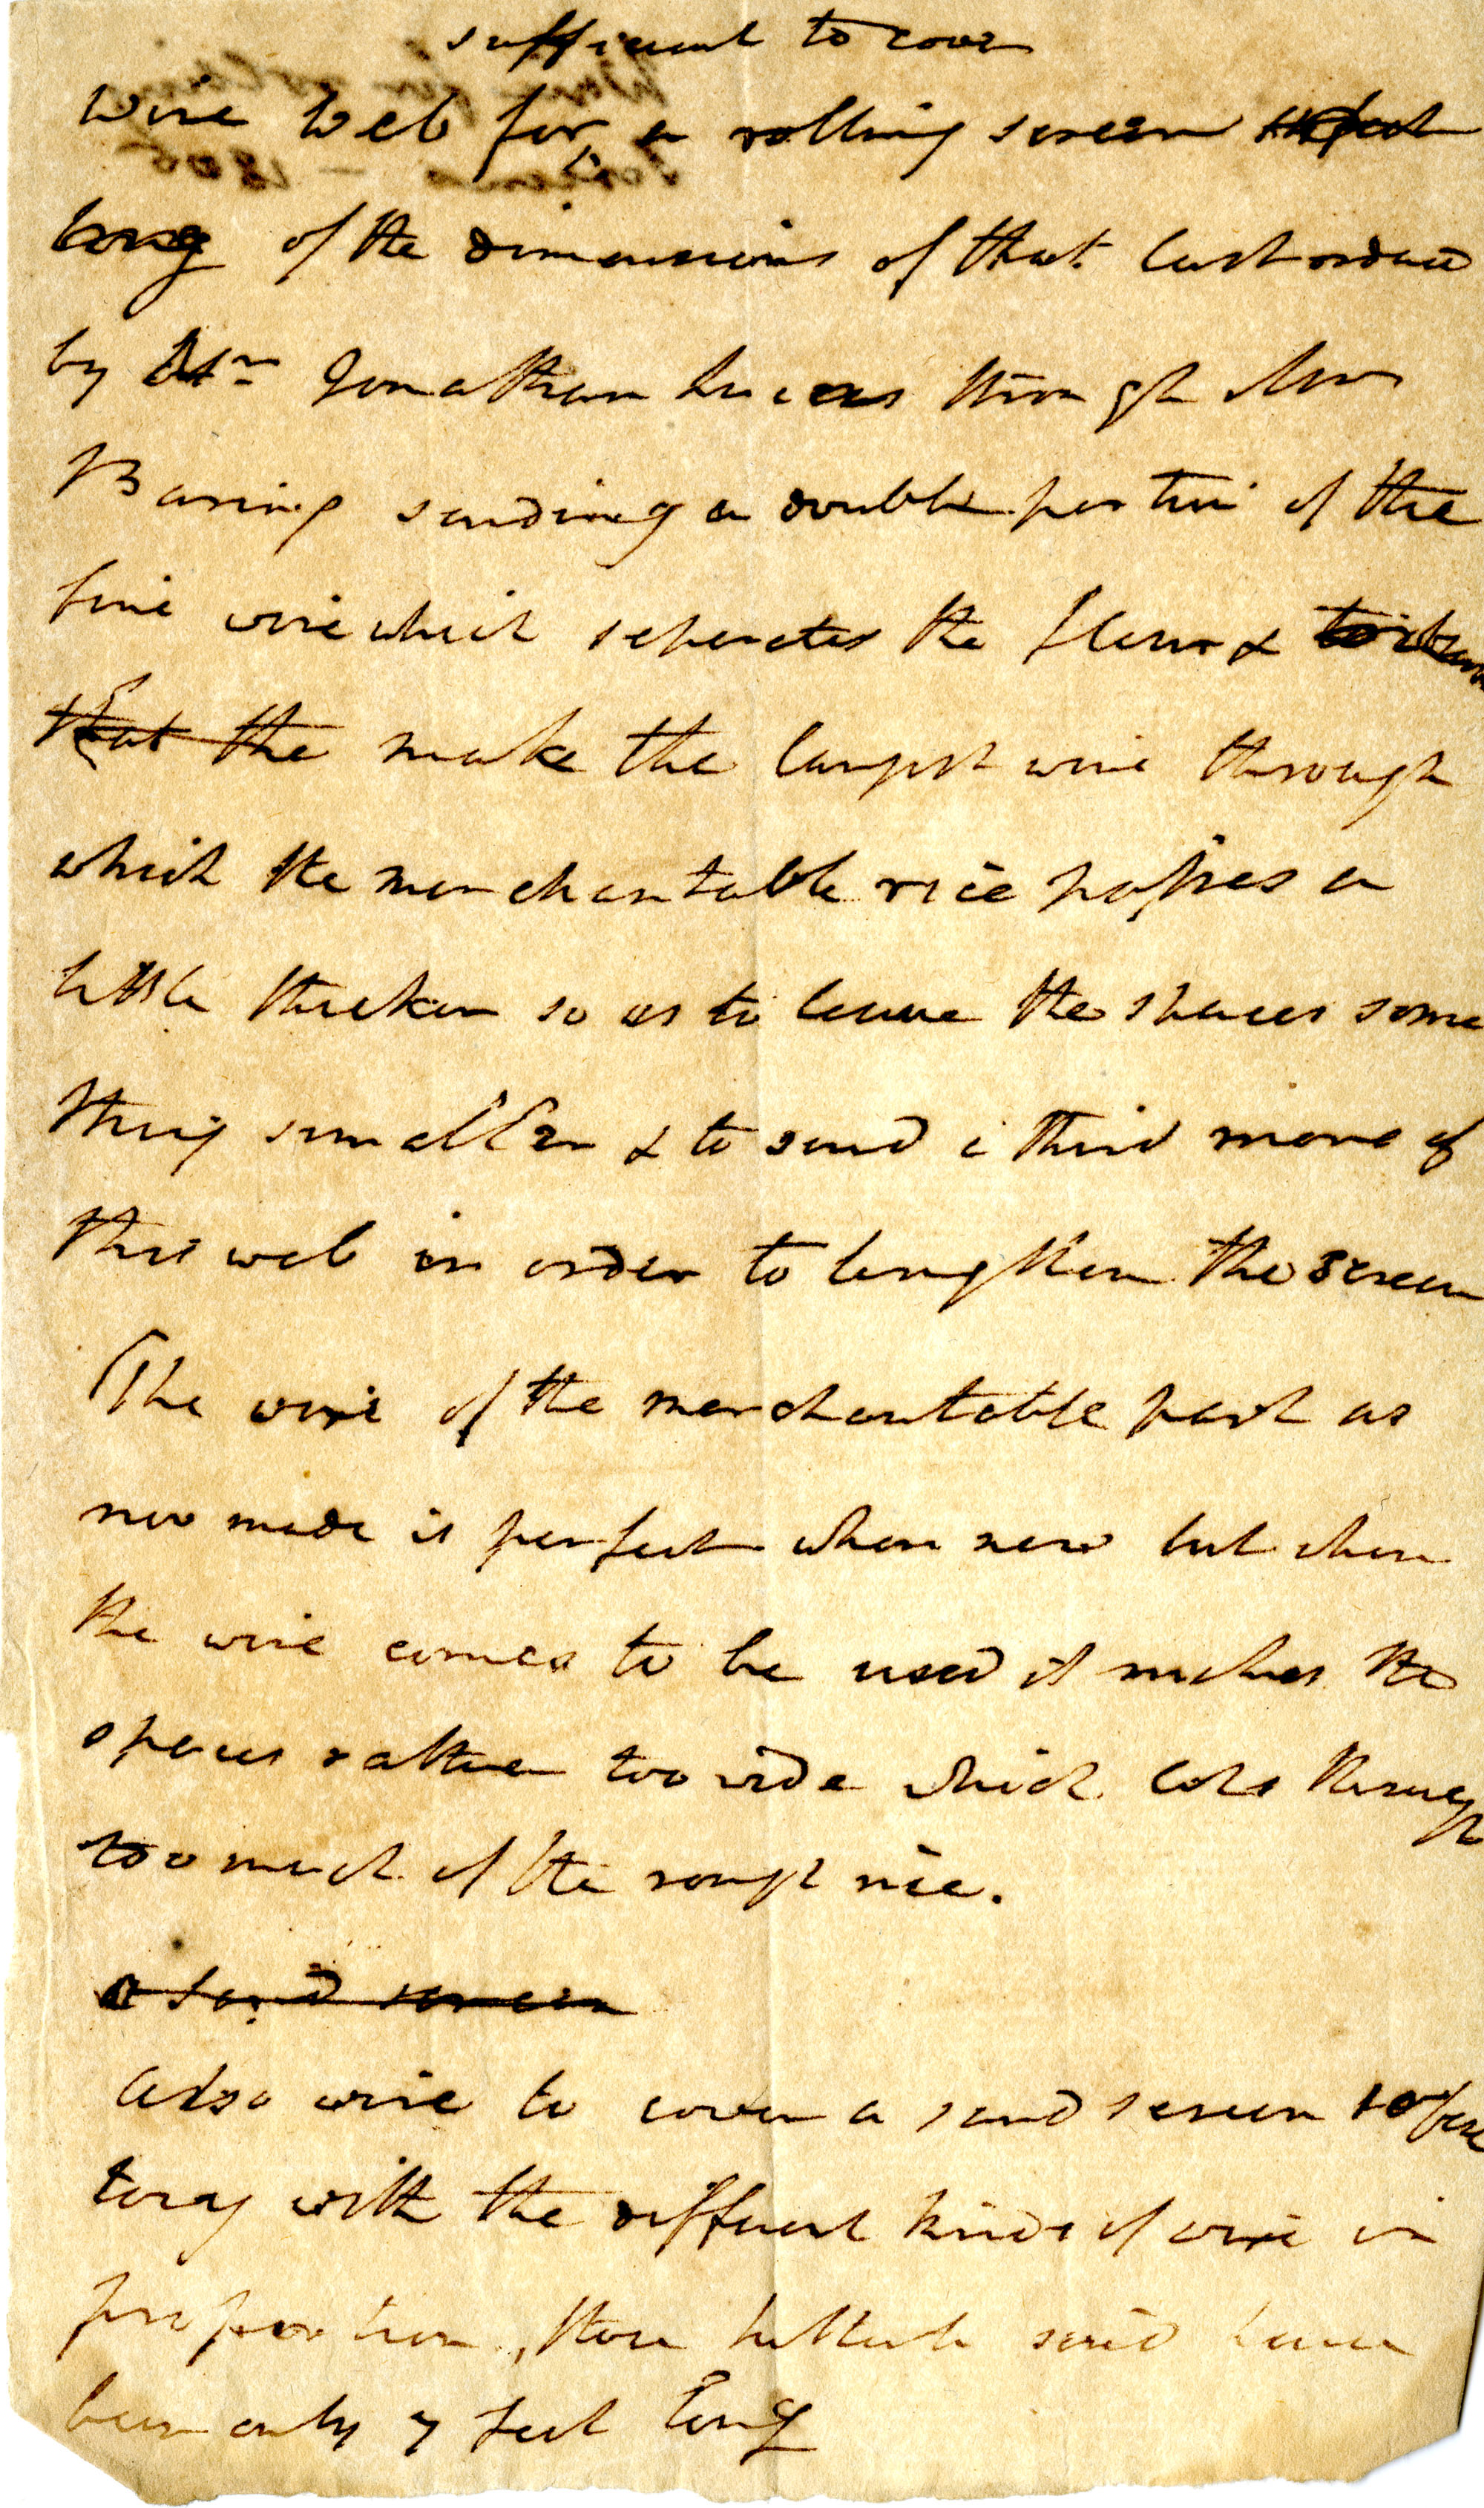 Pinckney's notes on 'wire web sufficient to cover a rolling screen…'